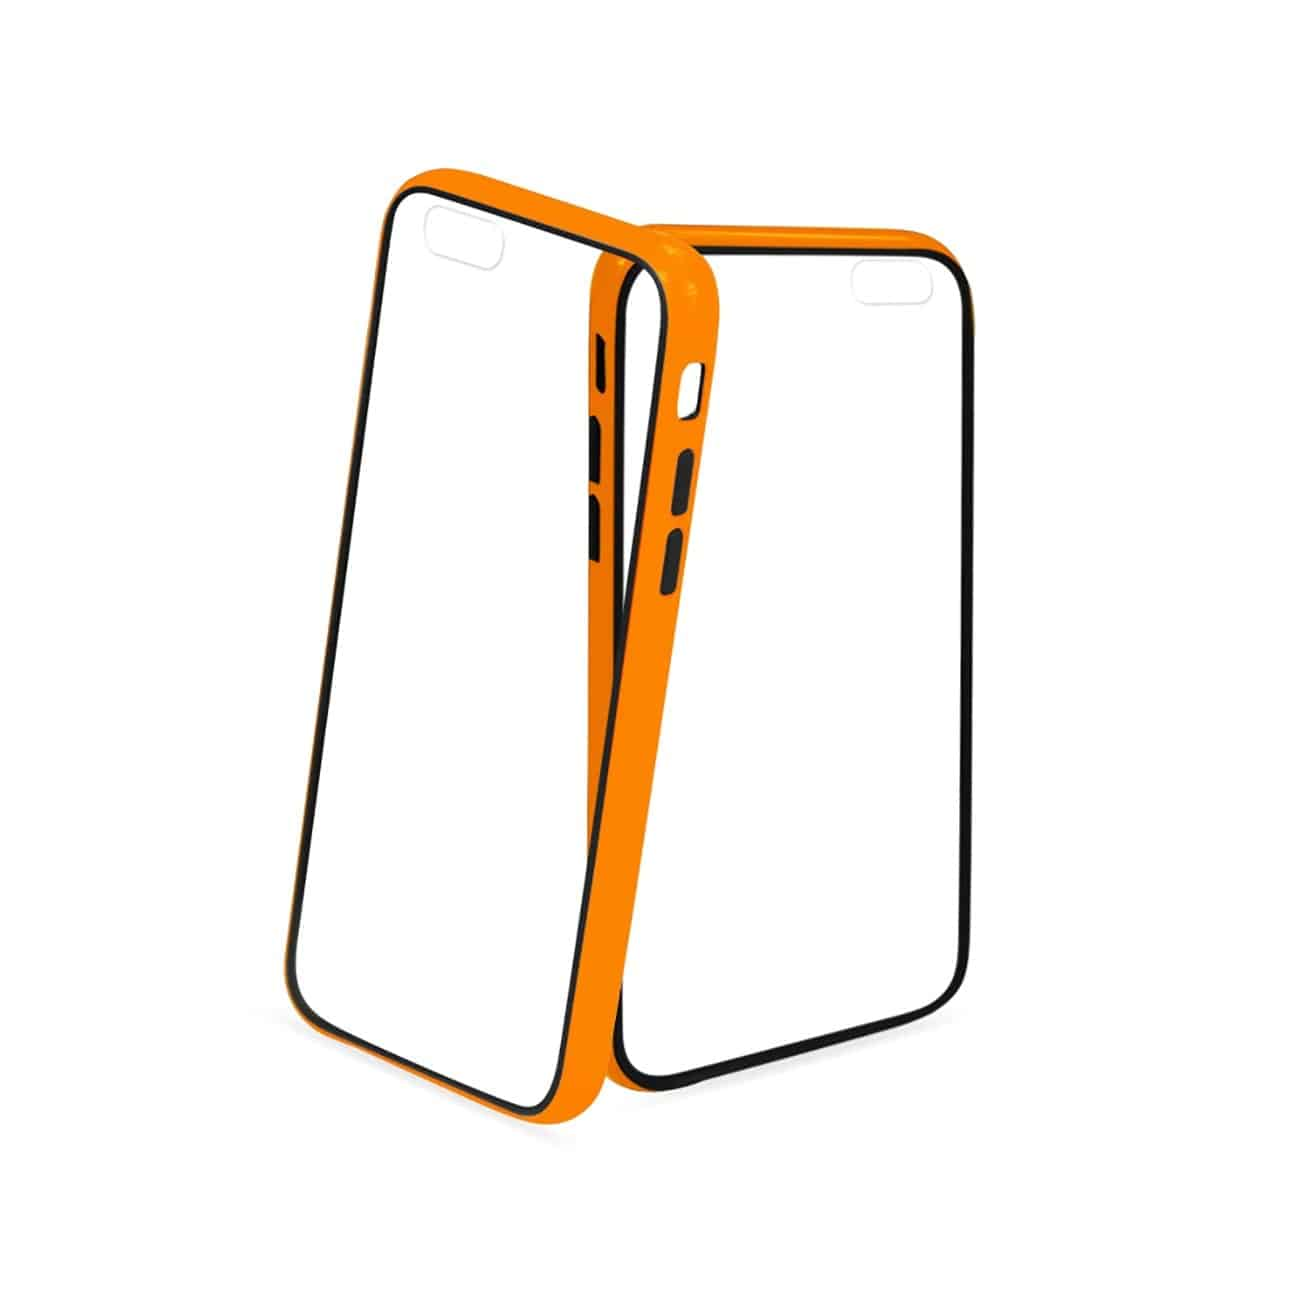 IPHONE 6 BUMPER CASE WITH TEMPERED GLASS SCREEN PROTECTOR IN ORANGE